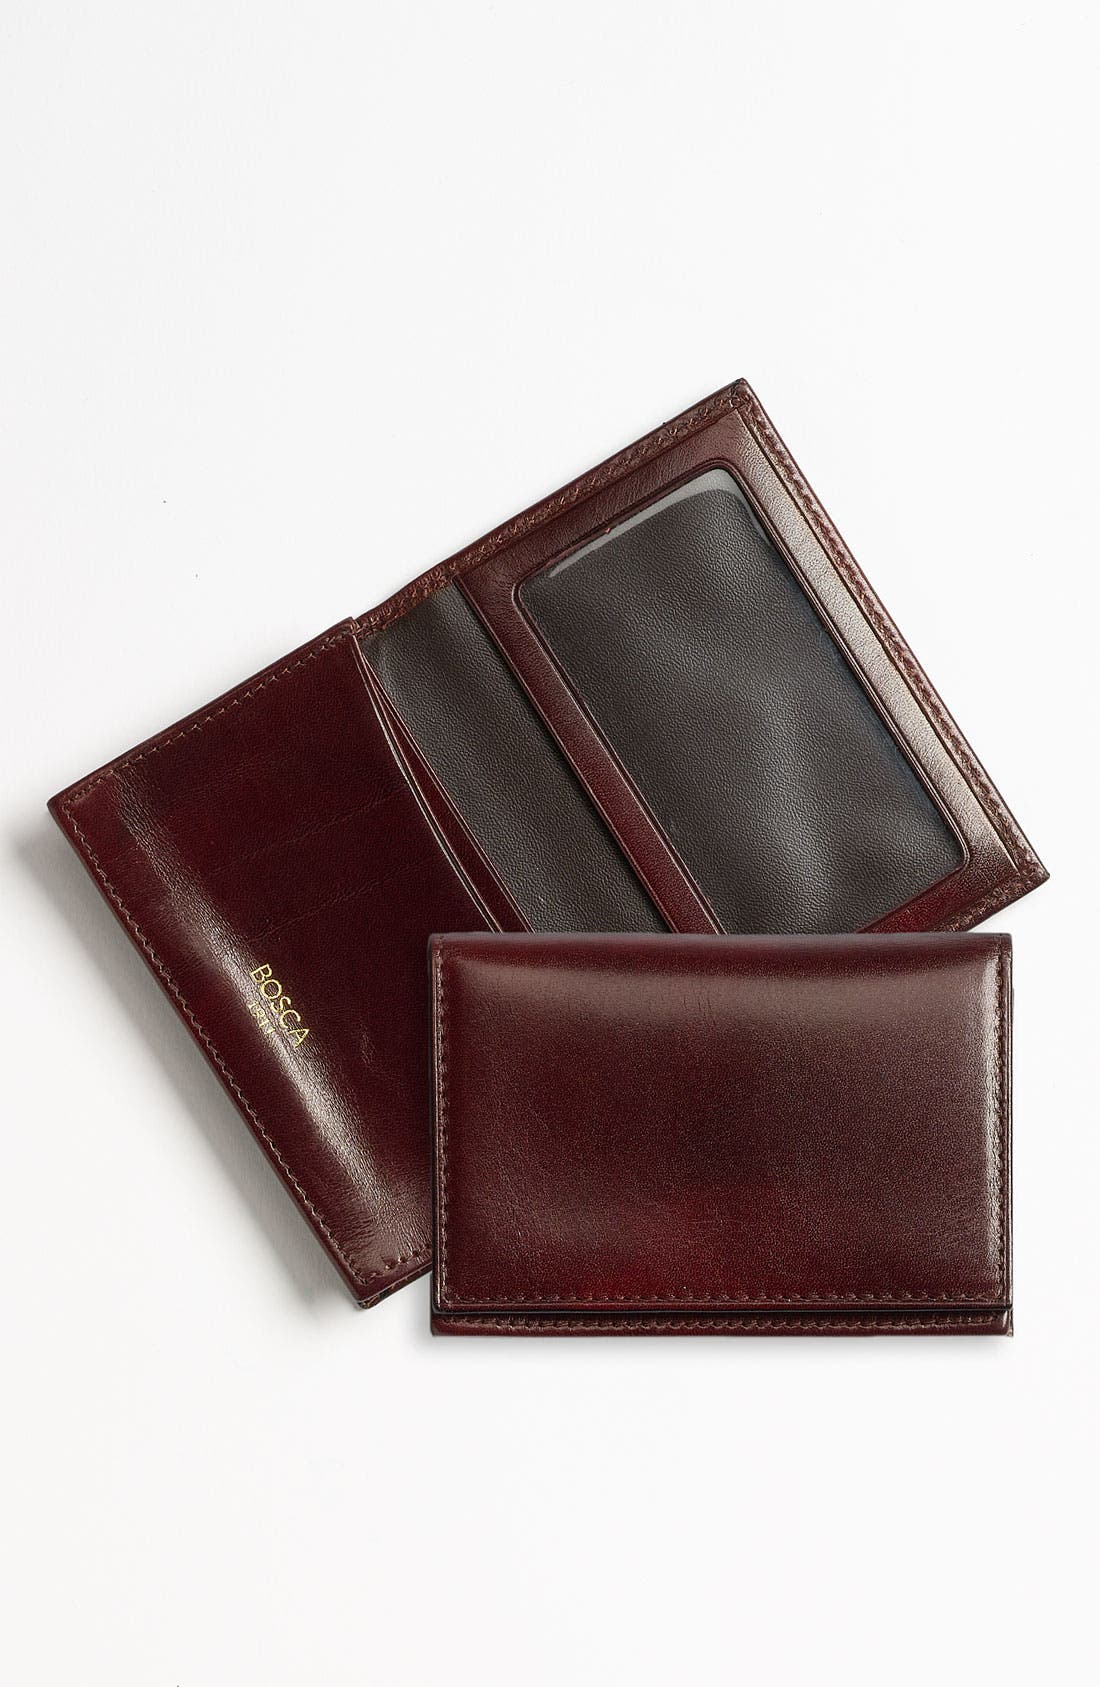 Old Leather Gusset Wallet